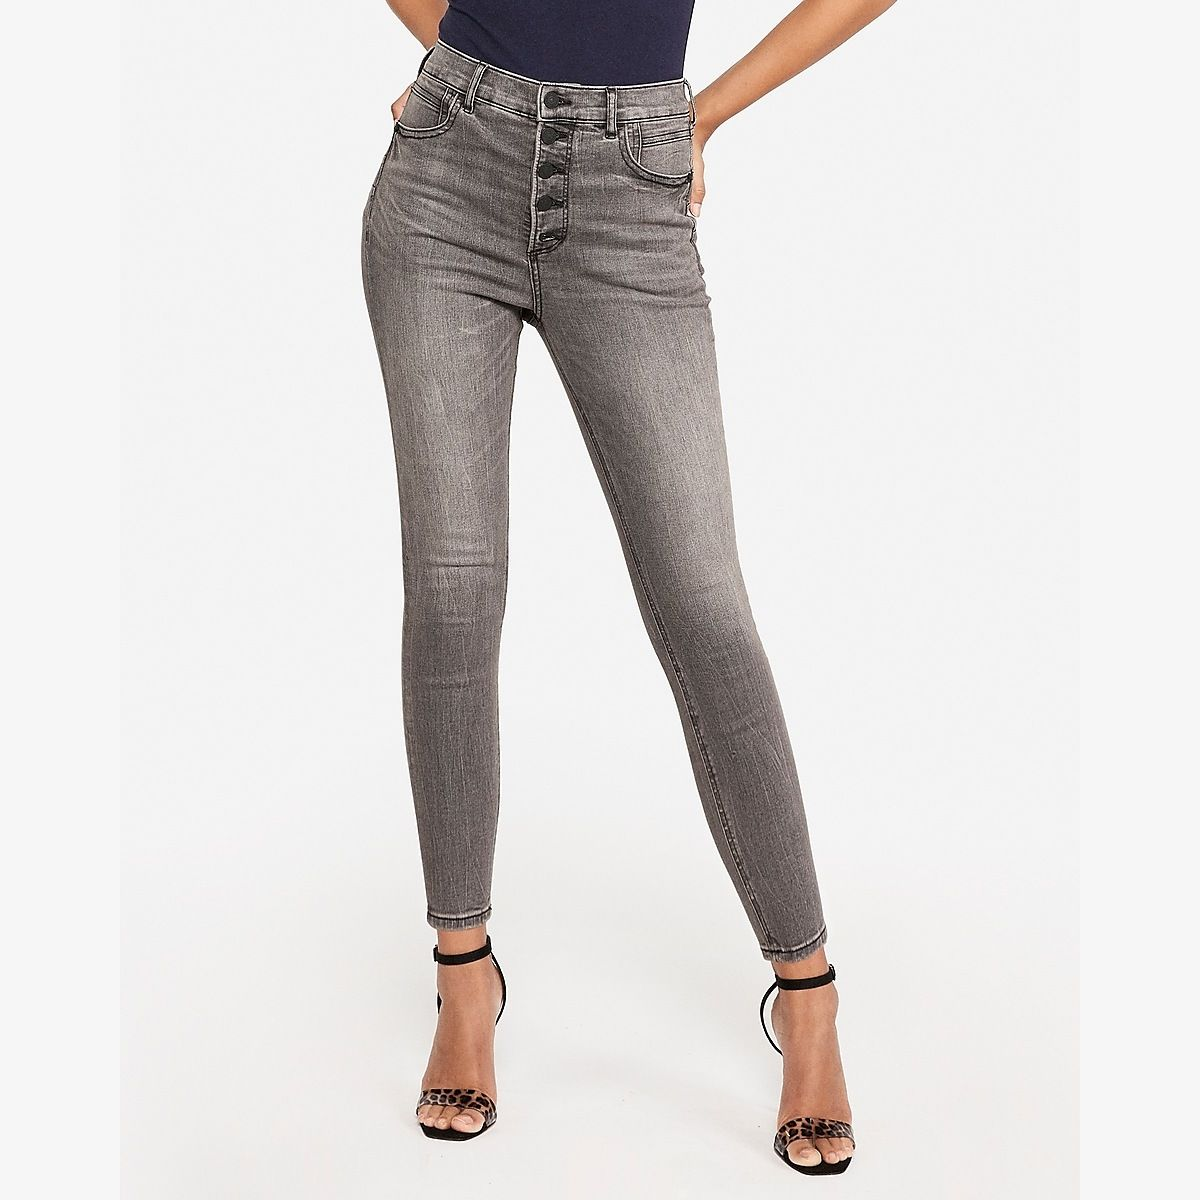 High Waisted Denim Perfect Lift Gray Button Fly Ankle Leggings Black Women's 16 #leopardshoesoutfit